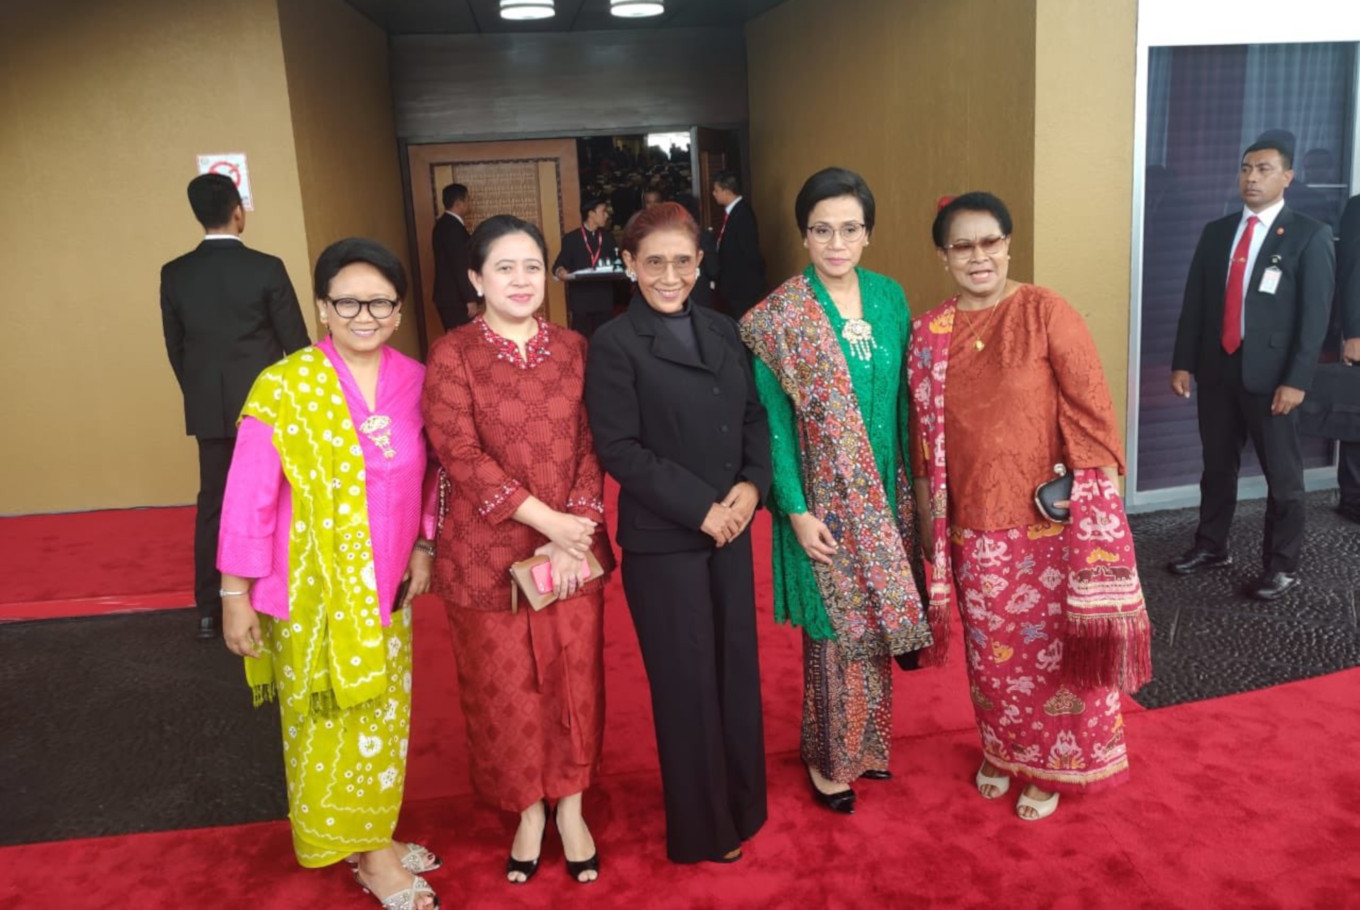 Guests don colorful outfits for annual State of Nation address